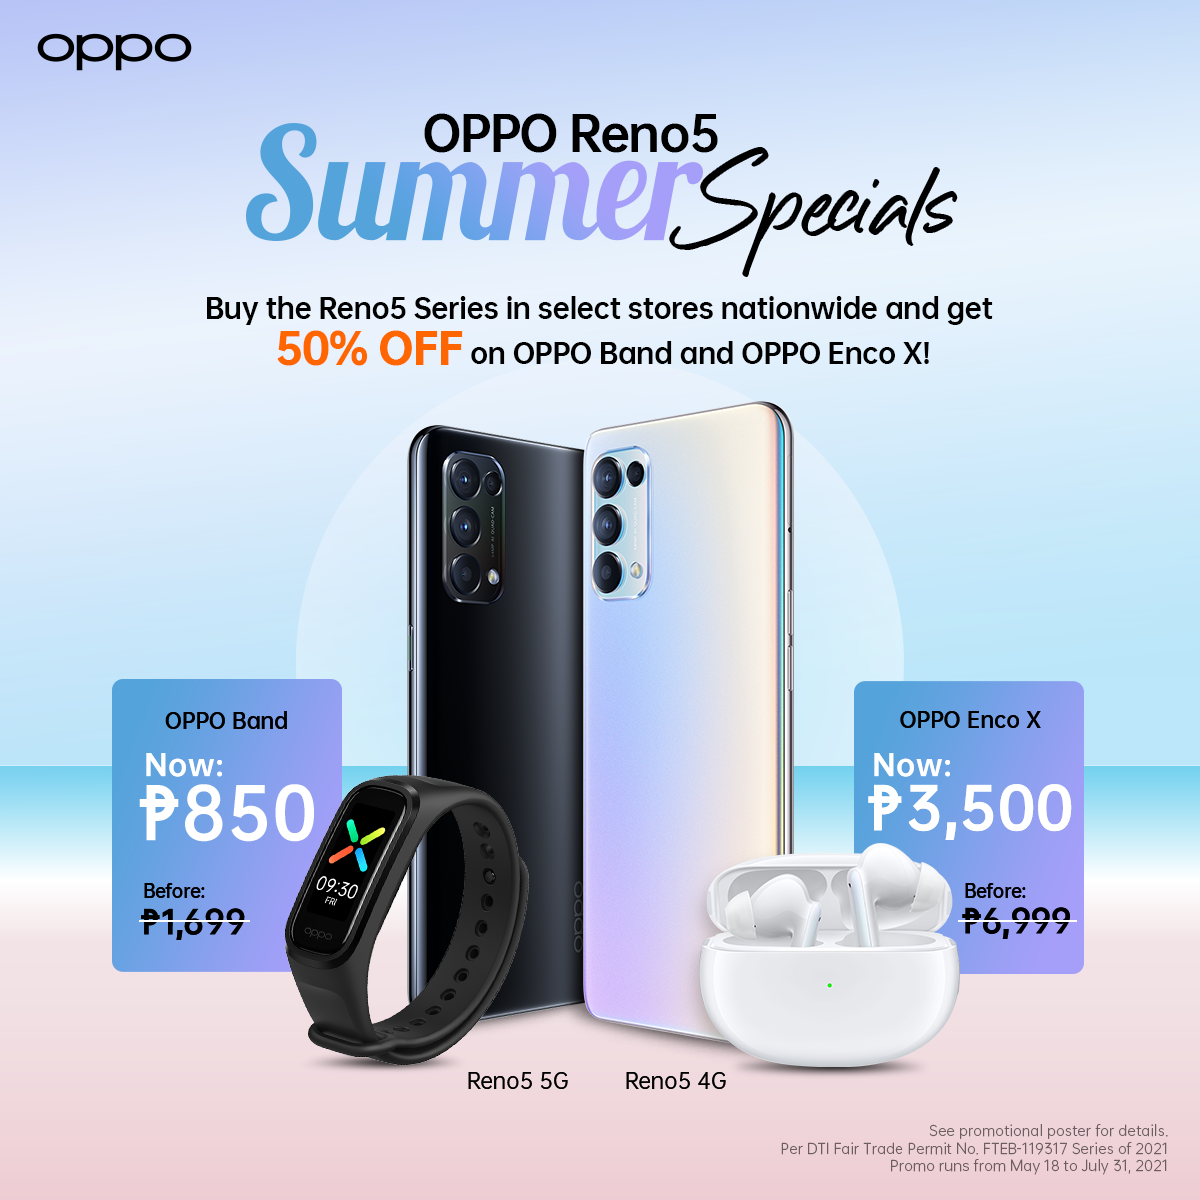 Hotter Deals with OPPO Reno5 Series  Offering 50% Off on OPPO Enco X and OPPO Band